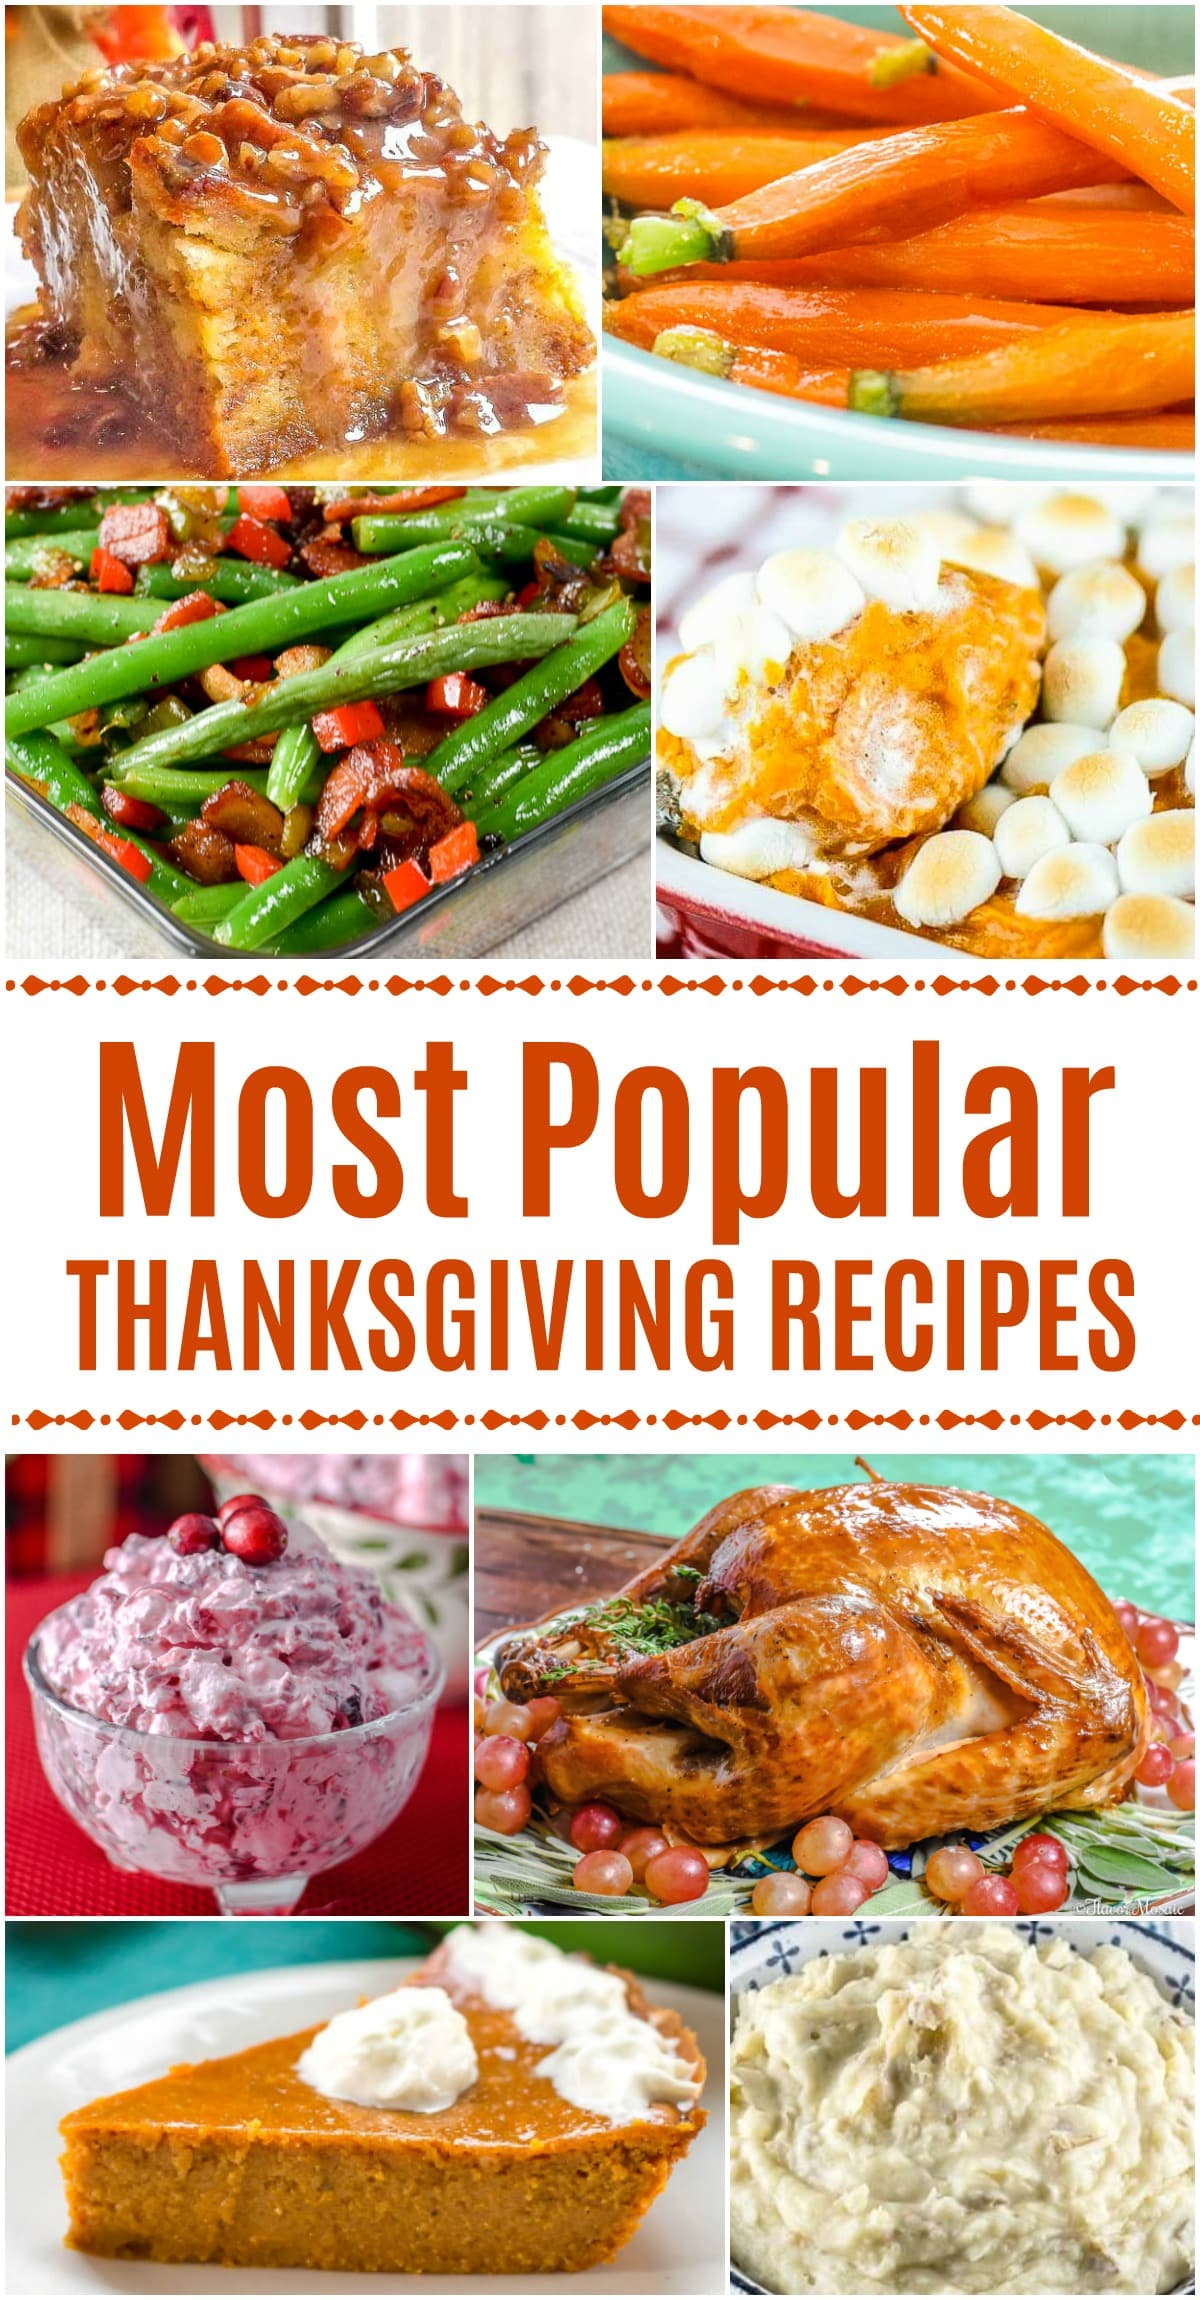 Check out the Most Popular Thanksgiving Recipes of all time from Flavor Mosaic and friends.